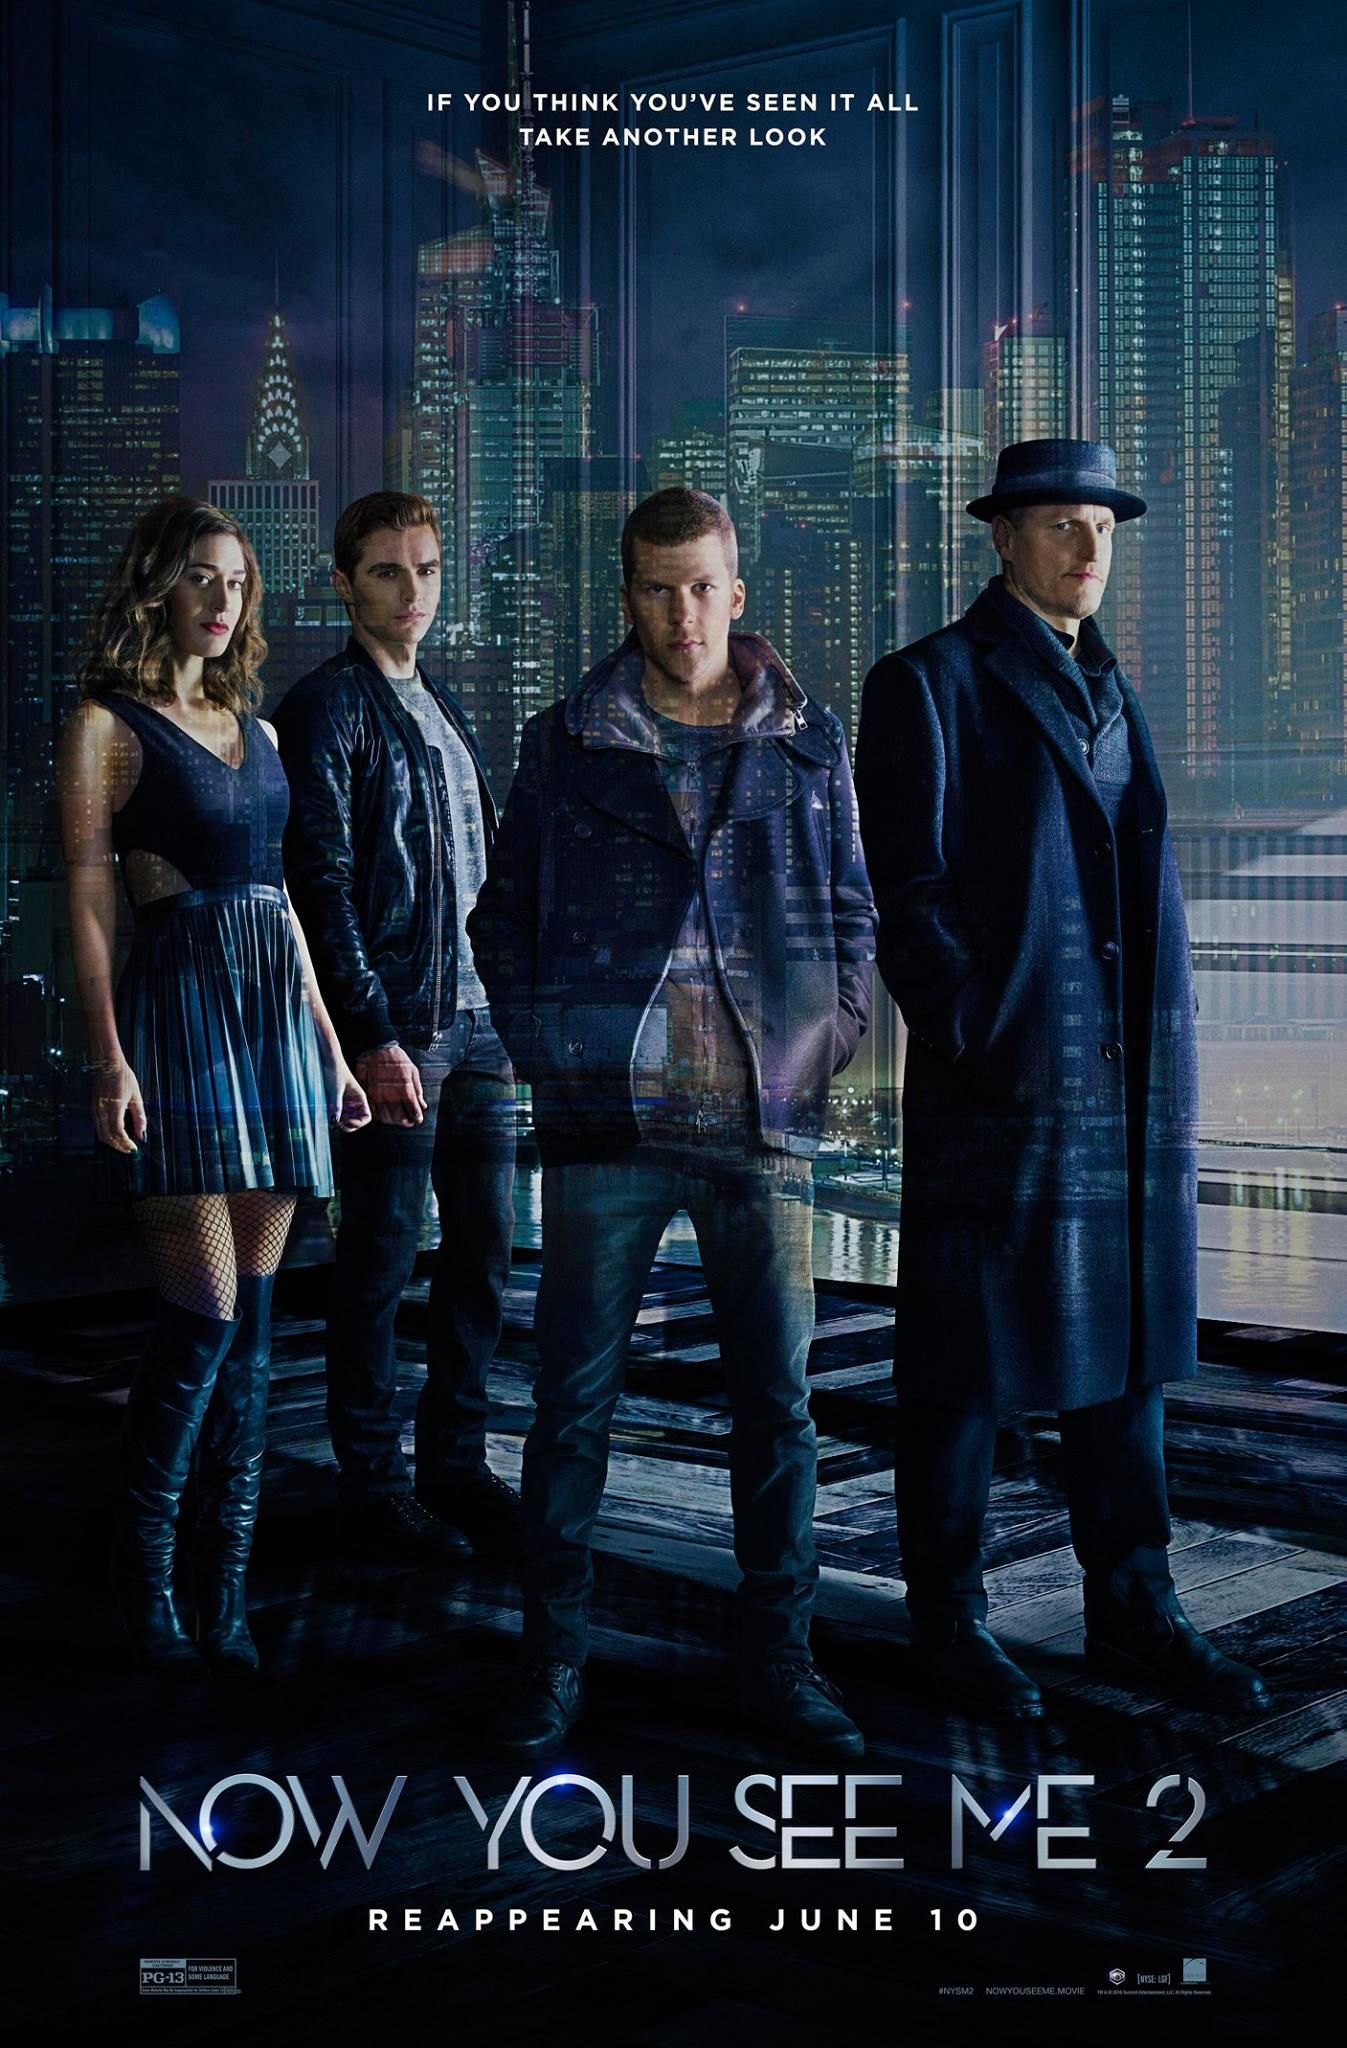 NOW YOU SEE ME 2 Starring Jesse Eisenberg, Dave Franco